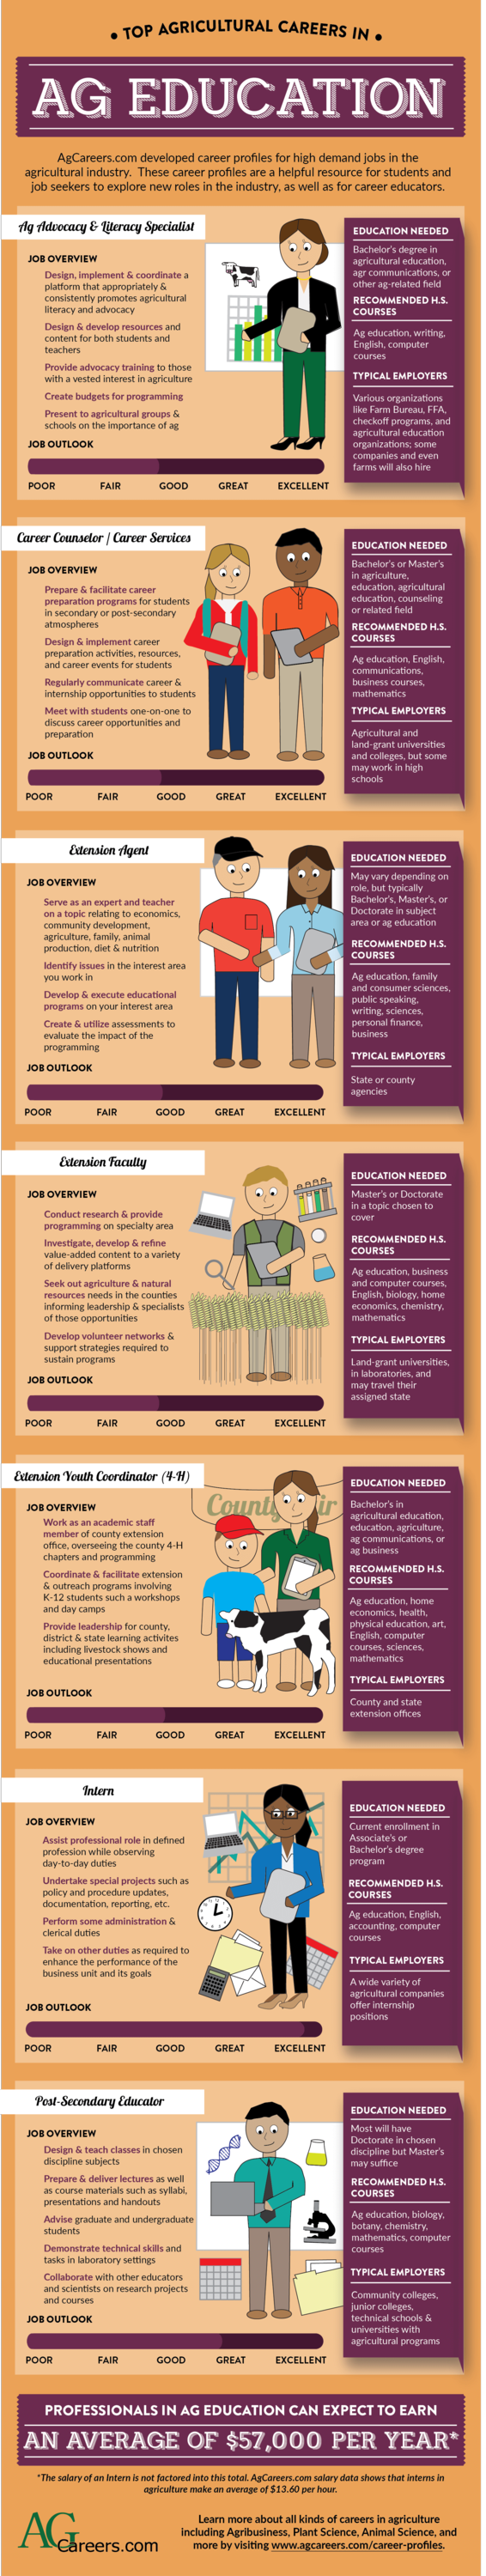 top careers in ag education